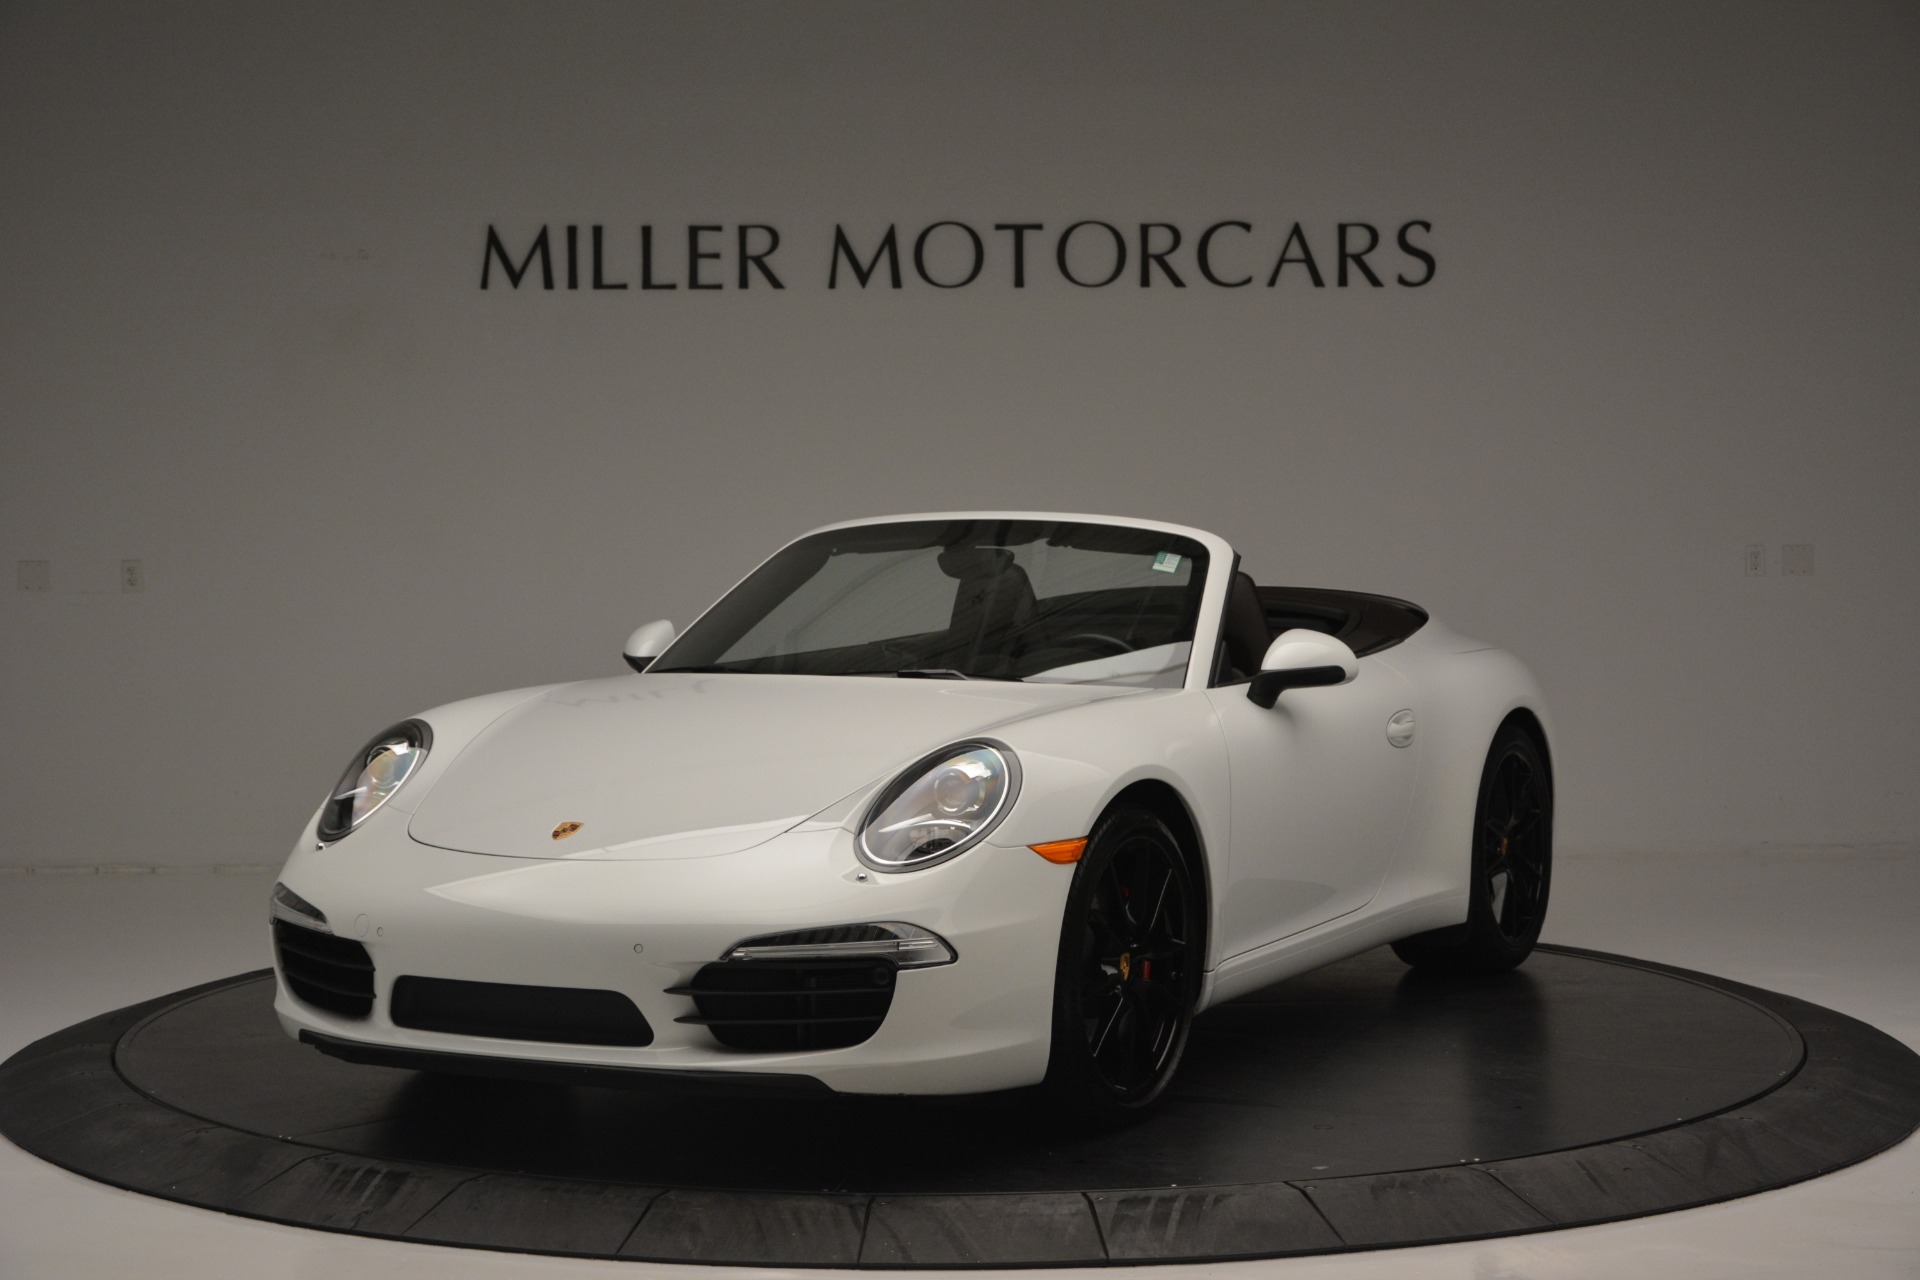 Used 2015 Porsche 911 Carrera S for sale Sold at Bugatti of Greenwich in Greenwich CT 06830 1